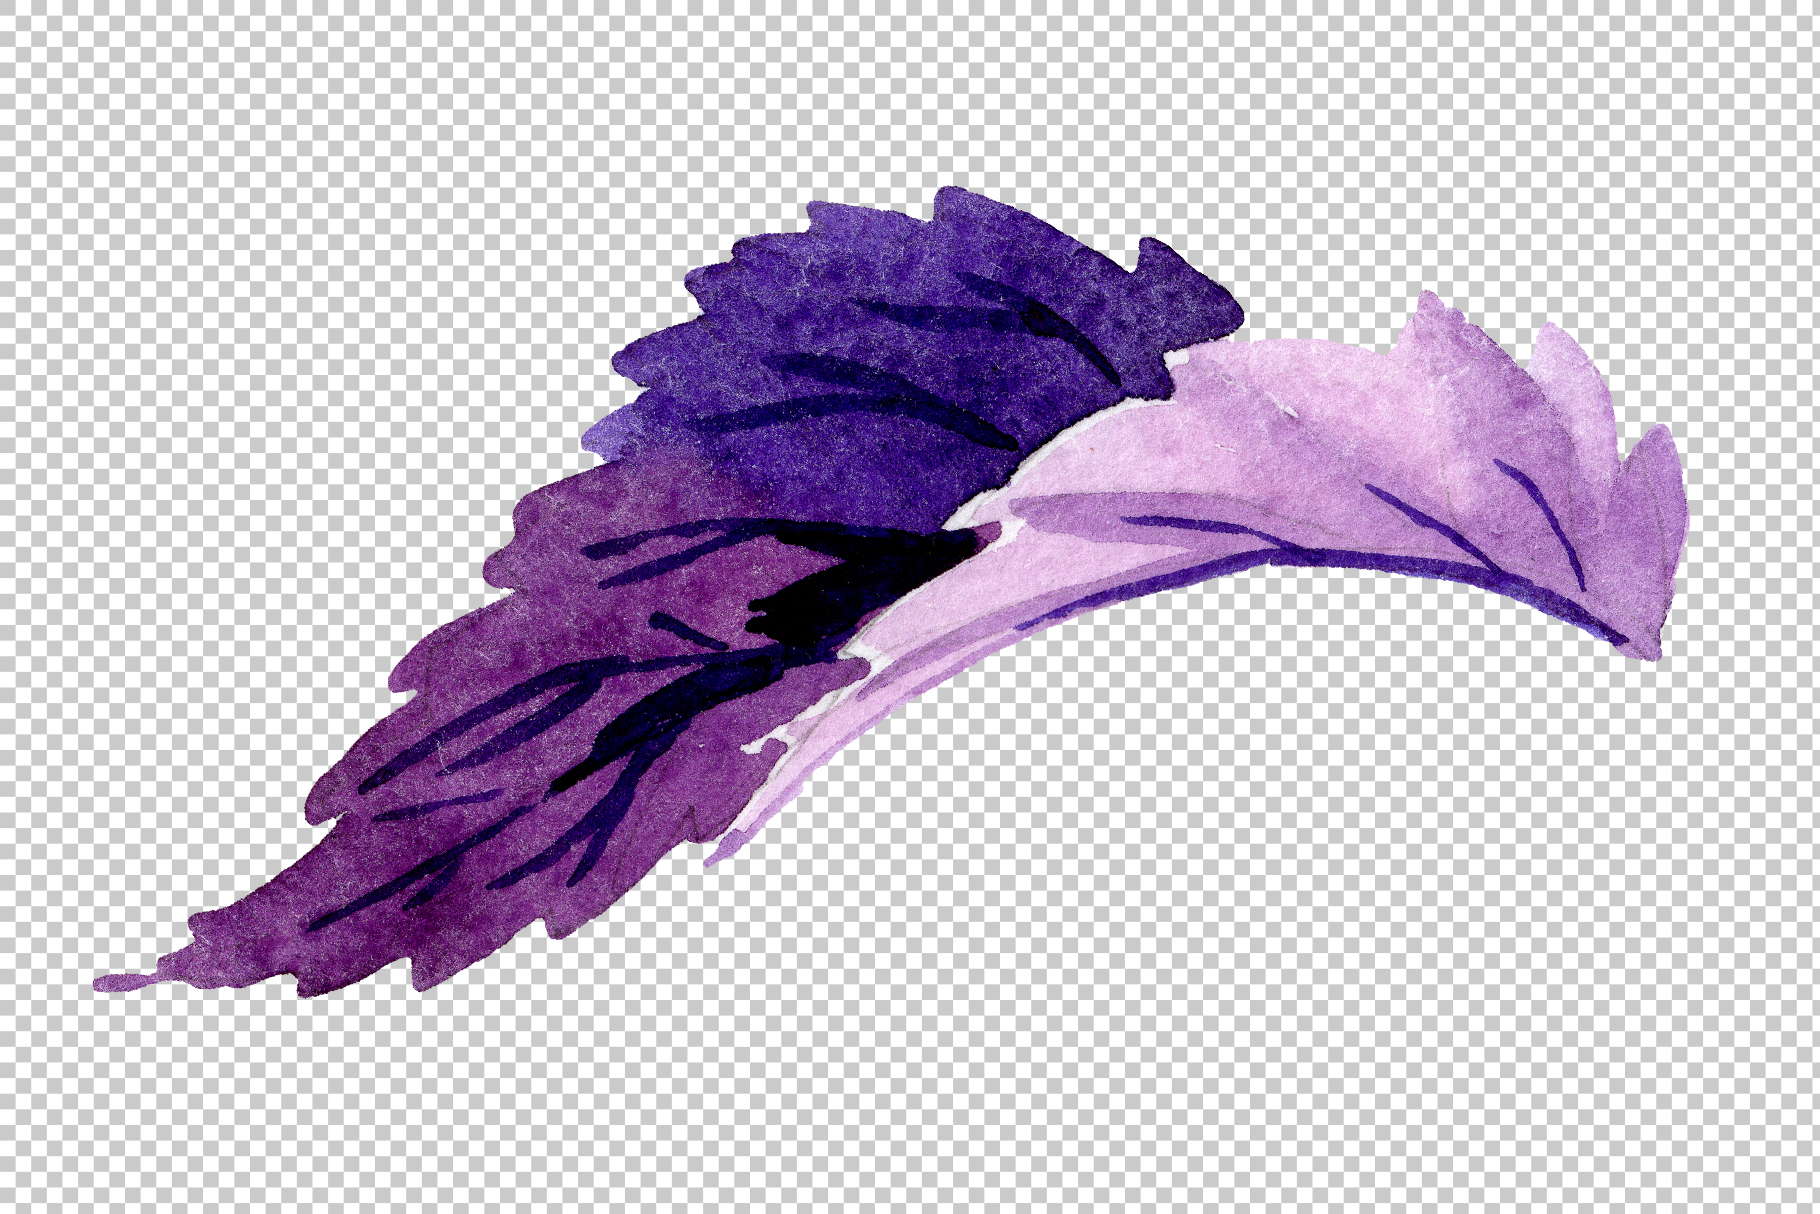 Begonia leaves Watercolor png example image 4